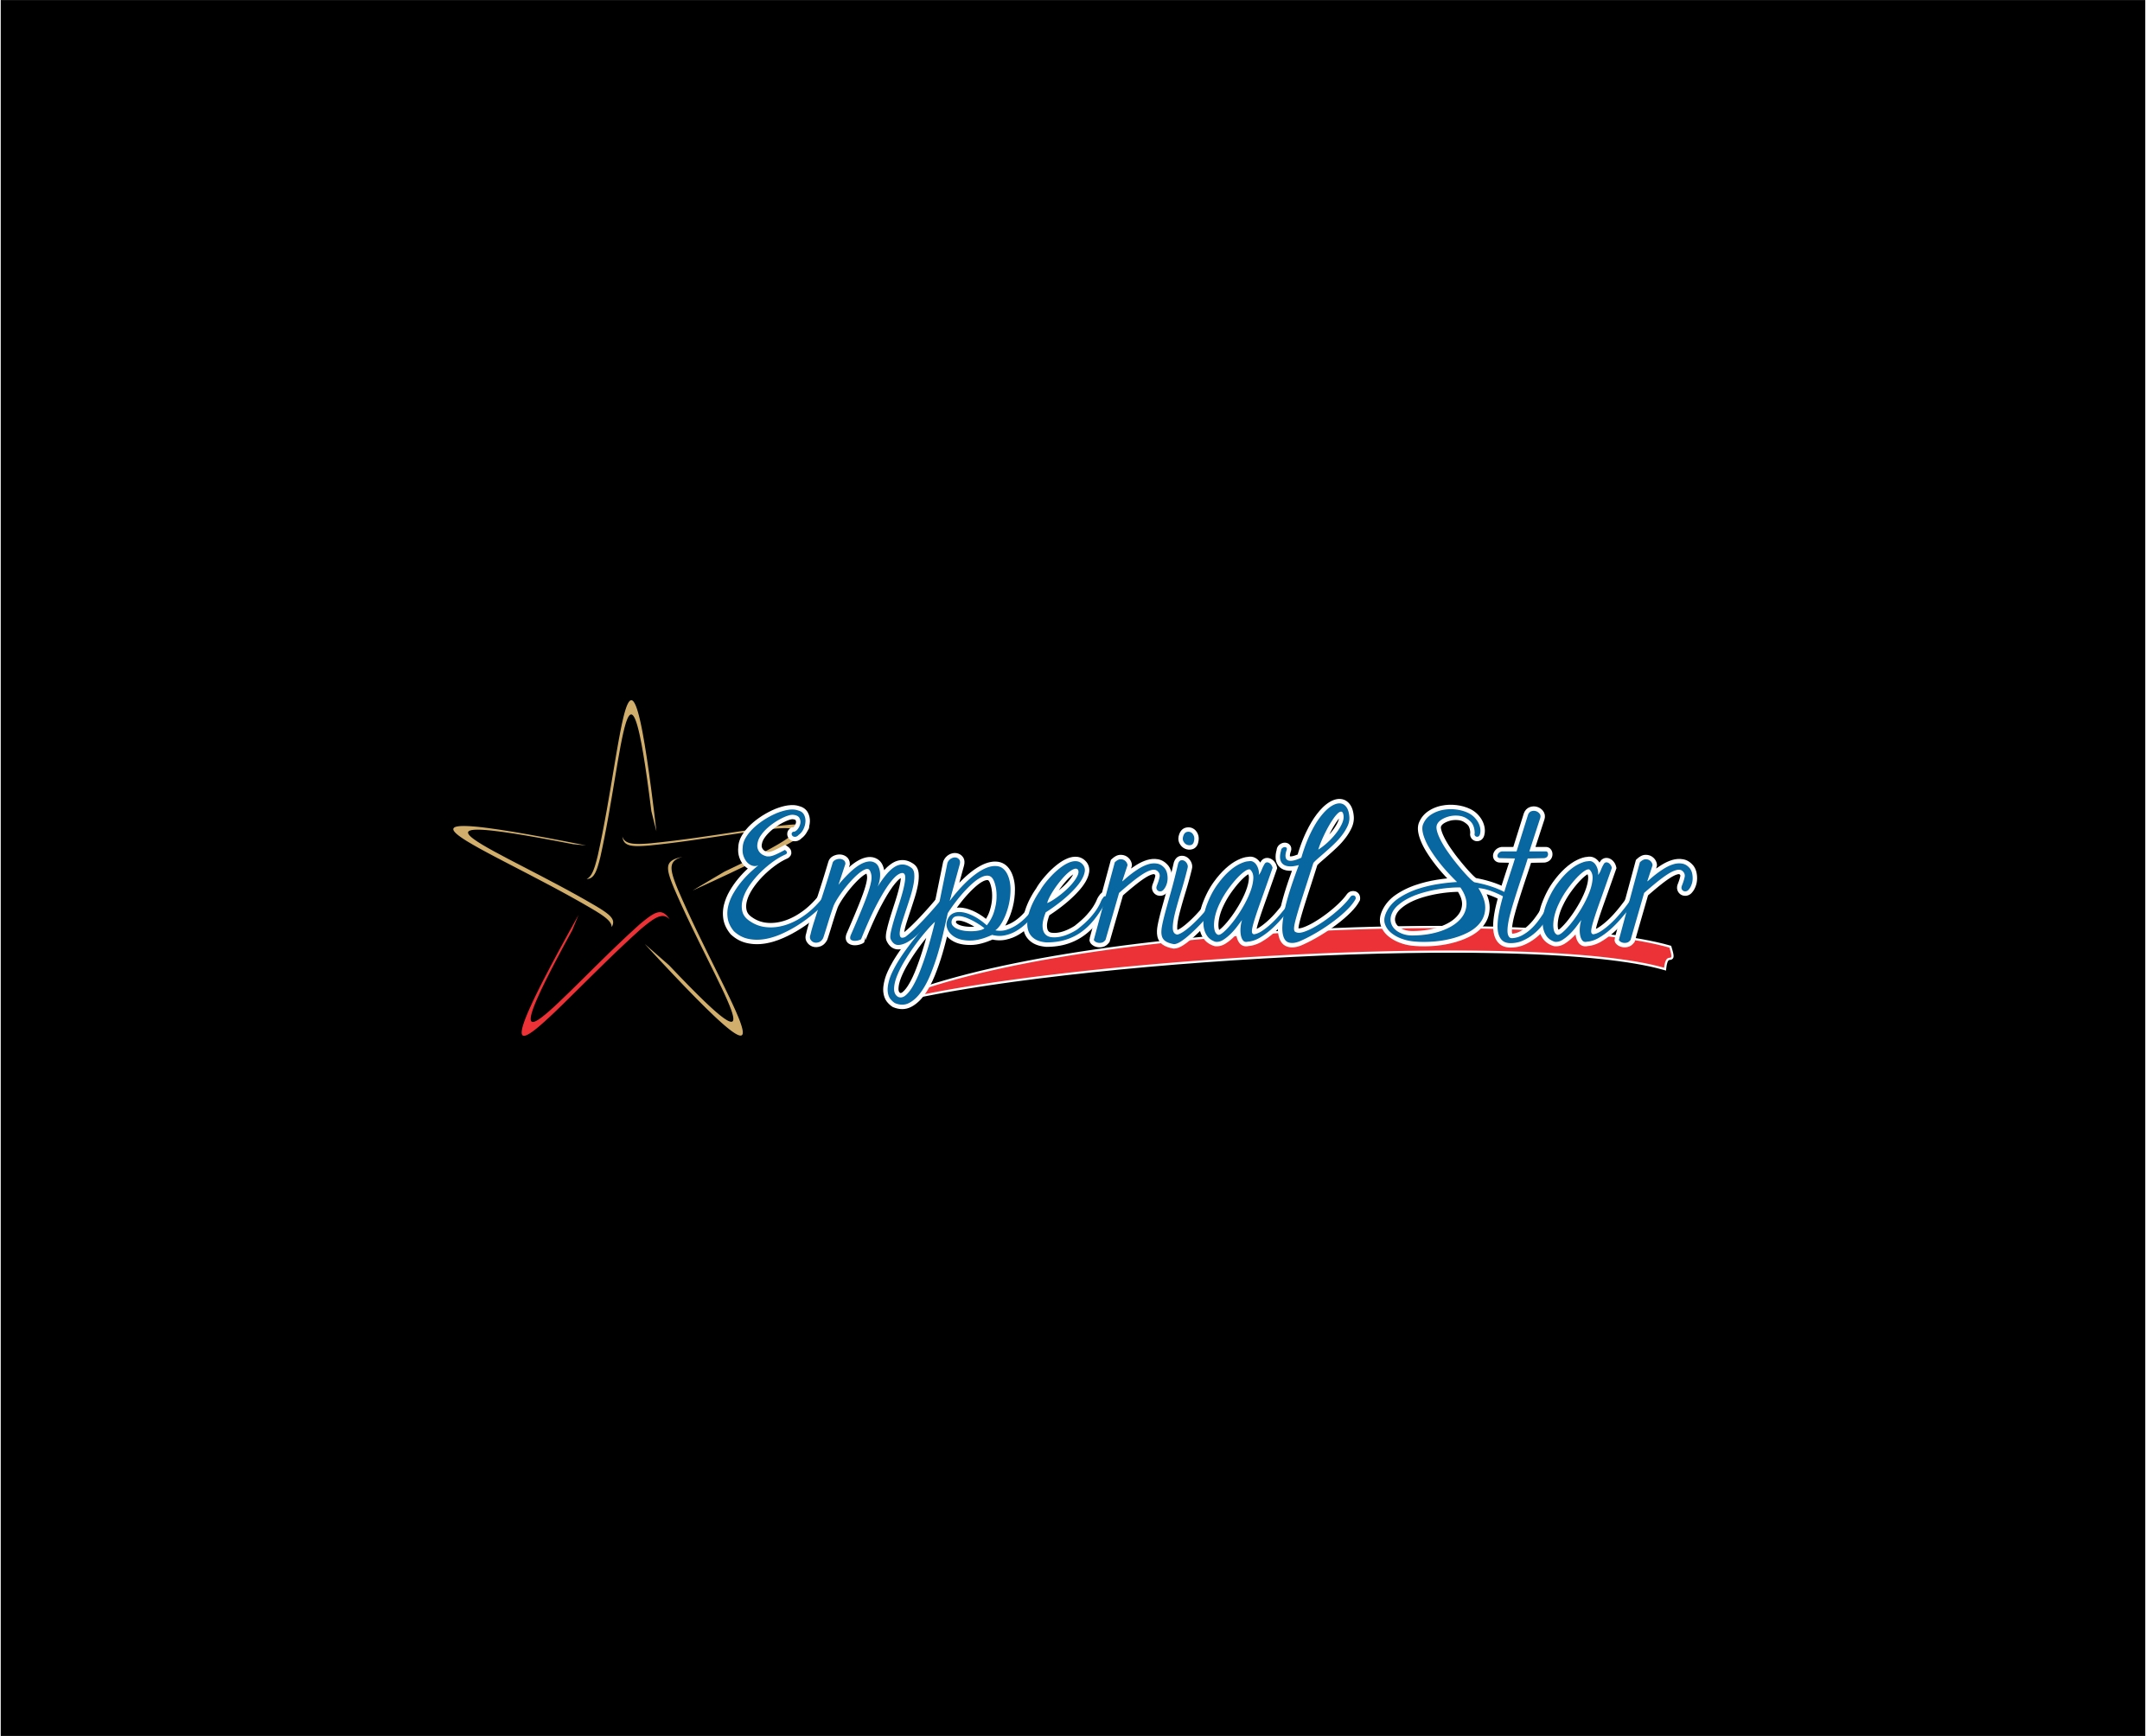 Logo Design by dbb201 - Entry No. 30 in the Logo Design Contest Emperial Star Logo Design.